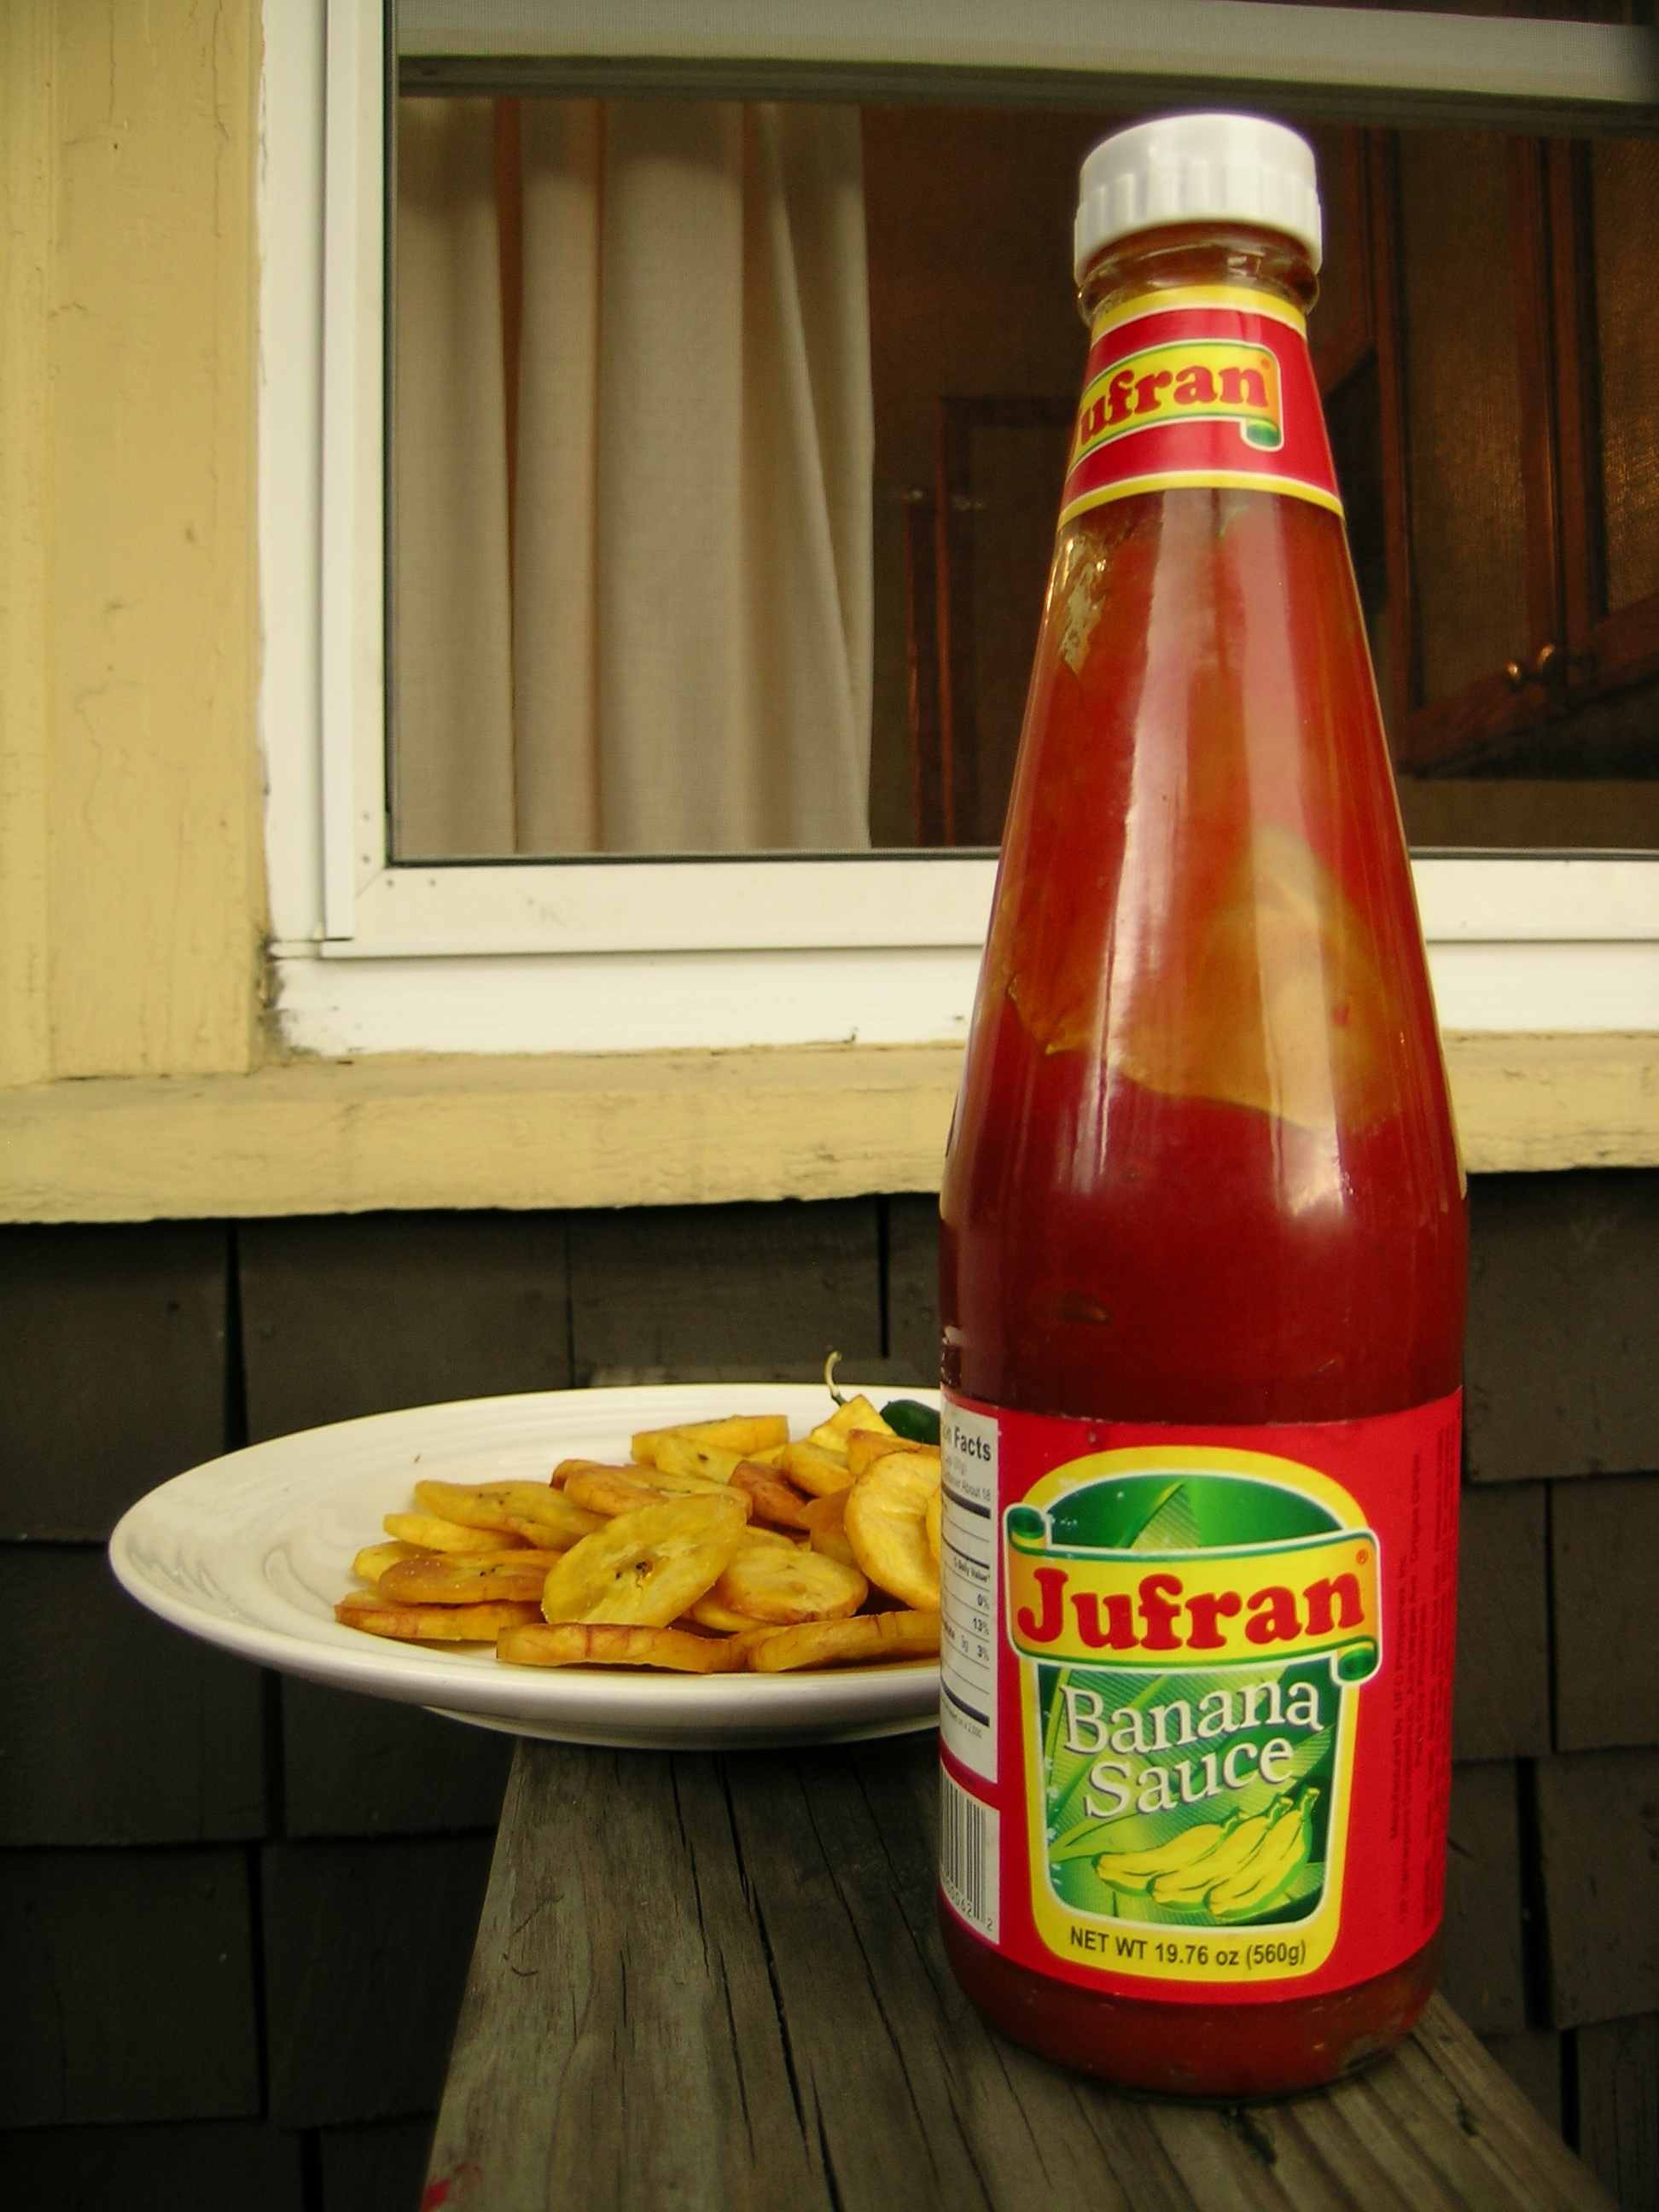 File:Banana ketchup.jpg - Wikimedia Commons